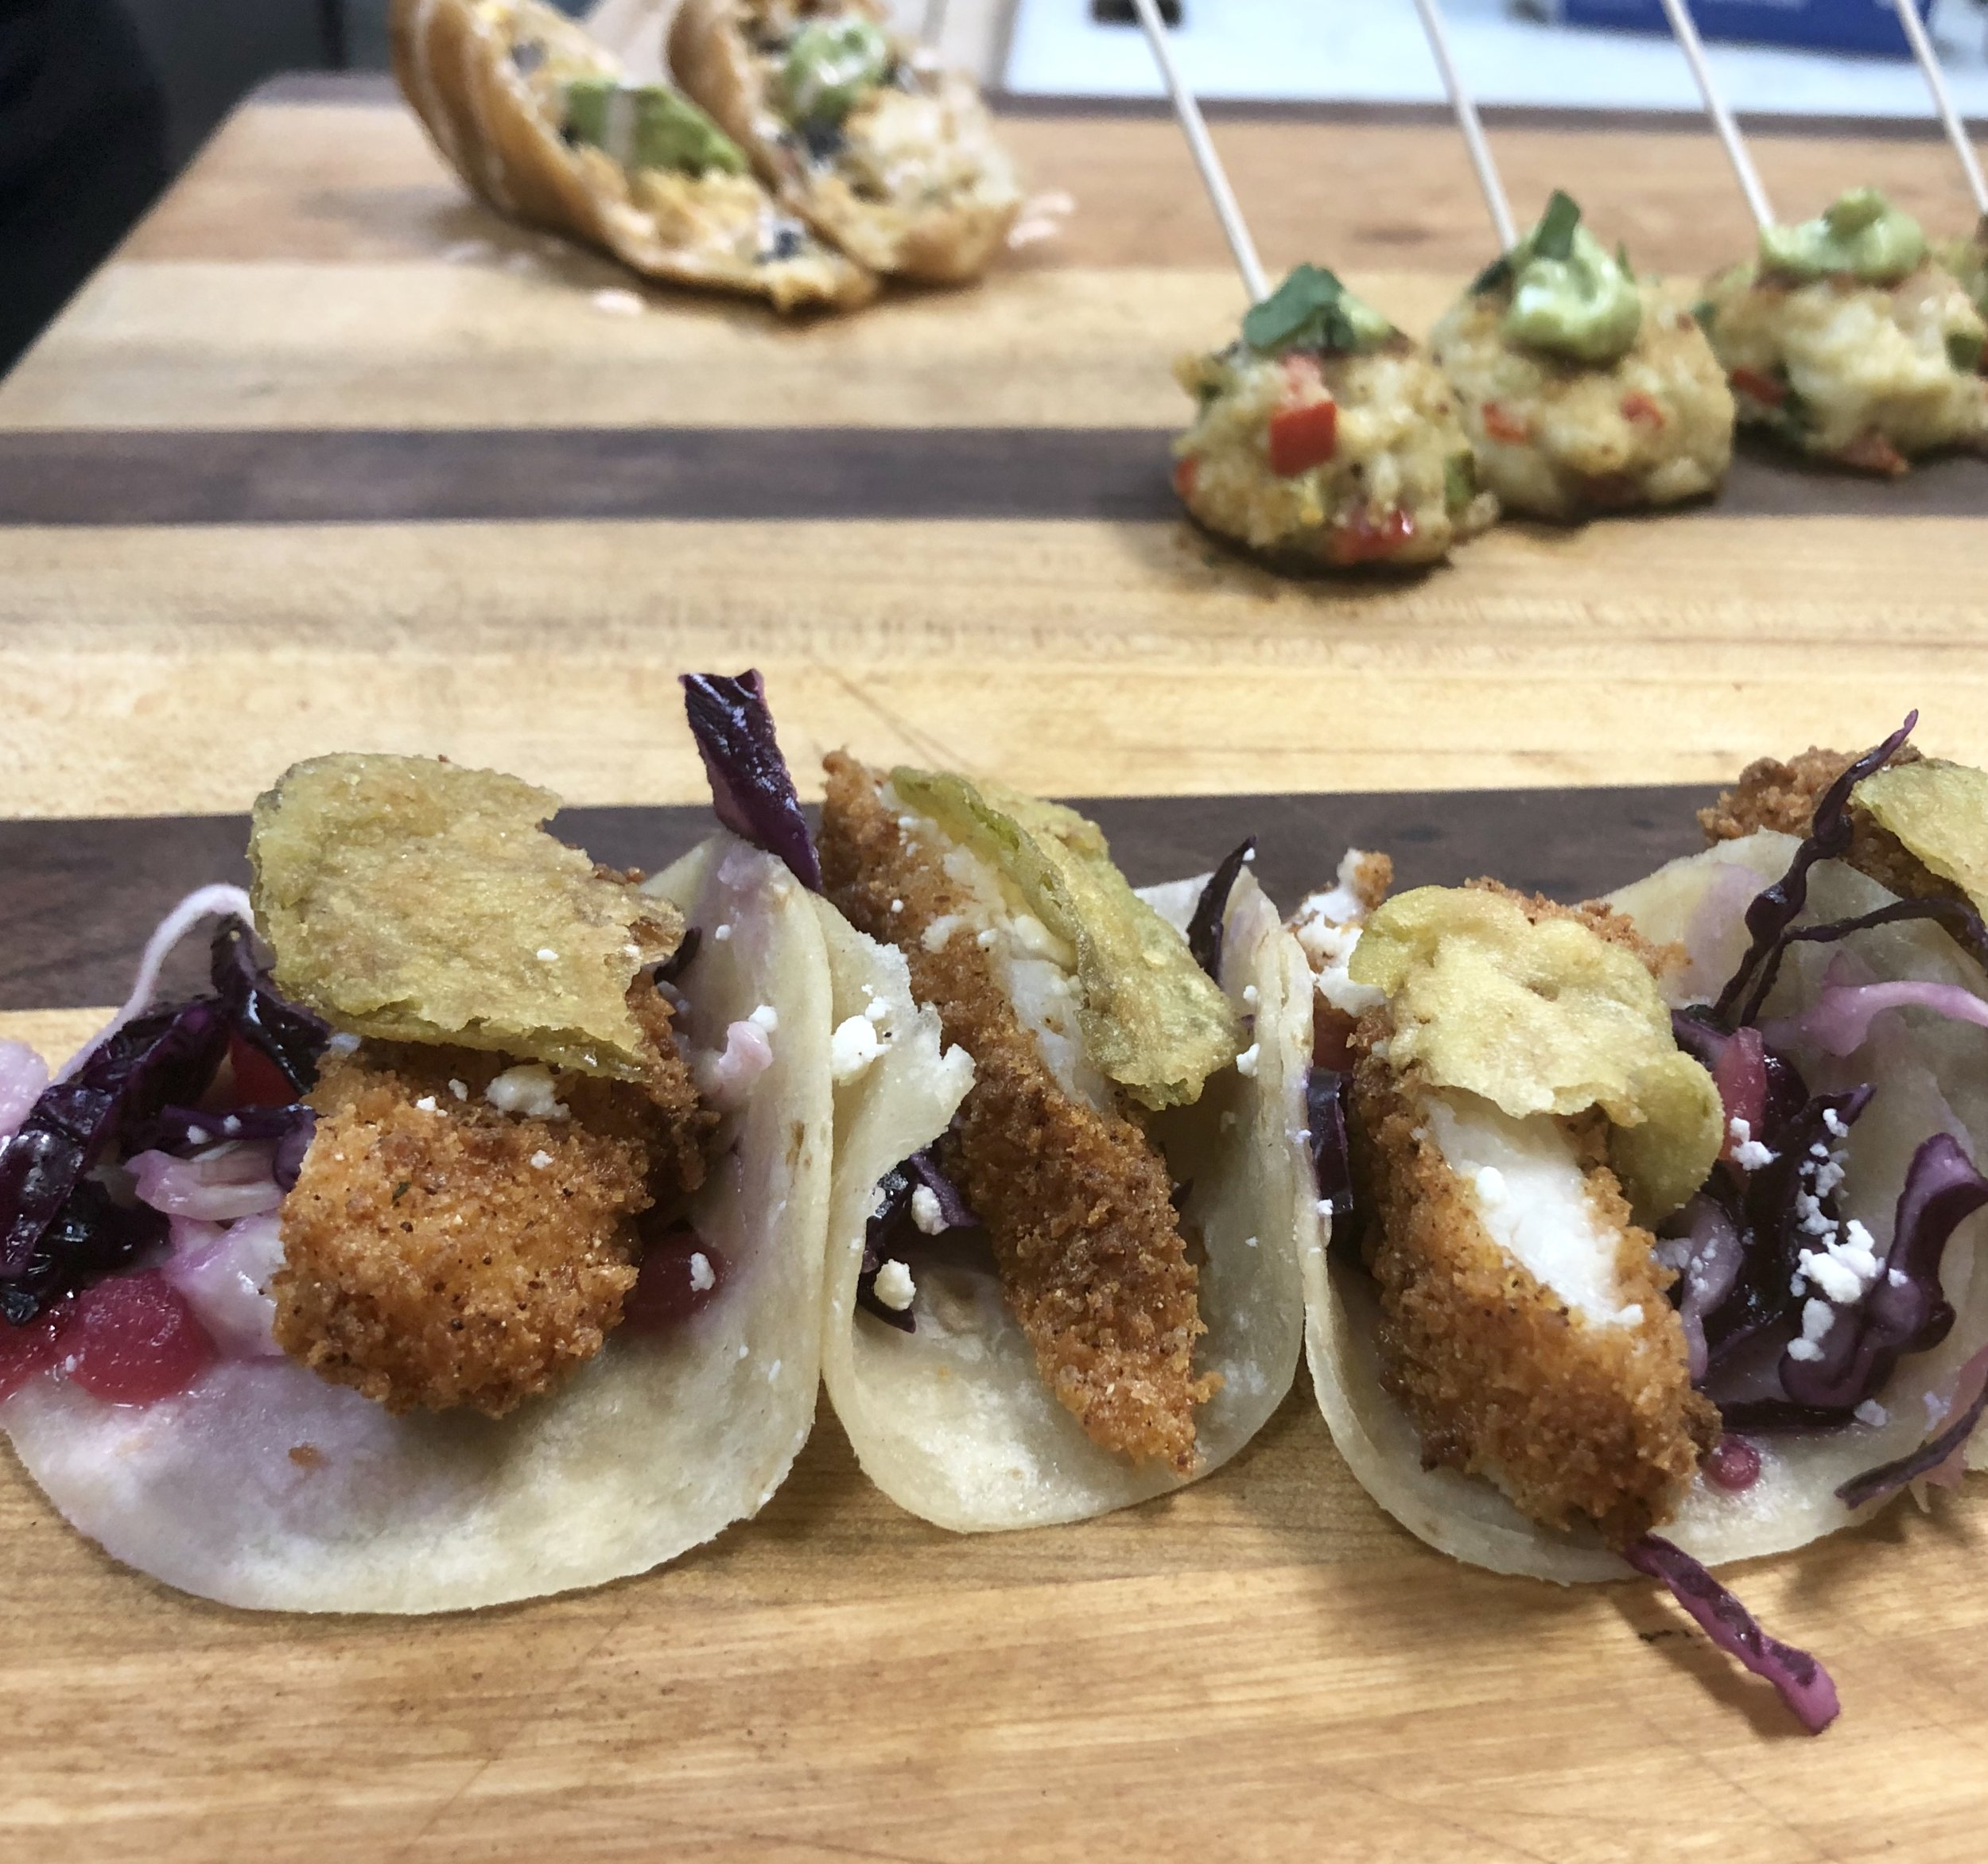 Mother's Catering Company takes a cue from sister company Mother's Cantina with these fried flounder tacos with Mexican slaw, queso fresco, and fried jalapeño on house made Mother's Flour Tortillas.